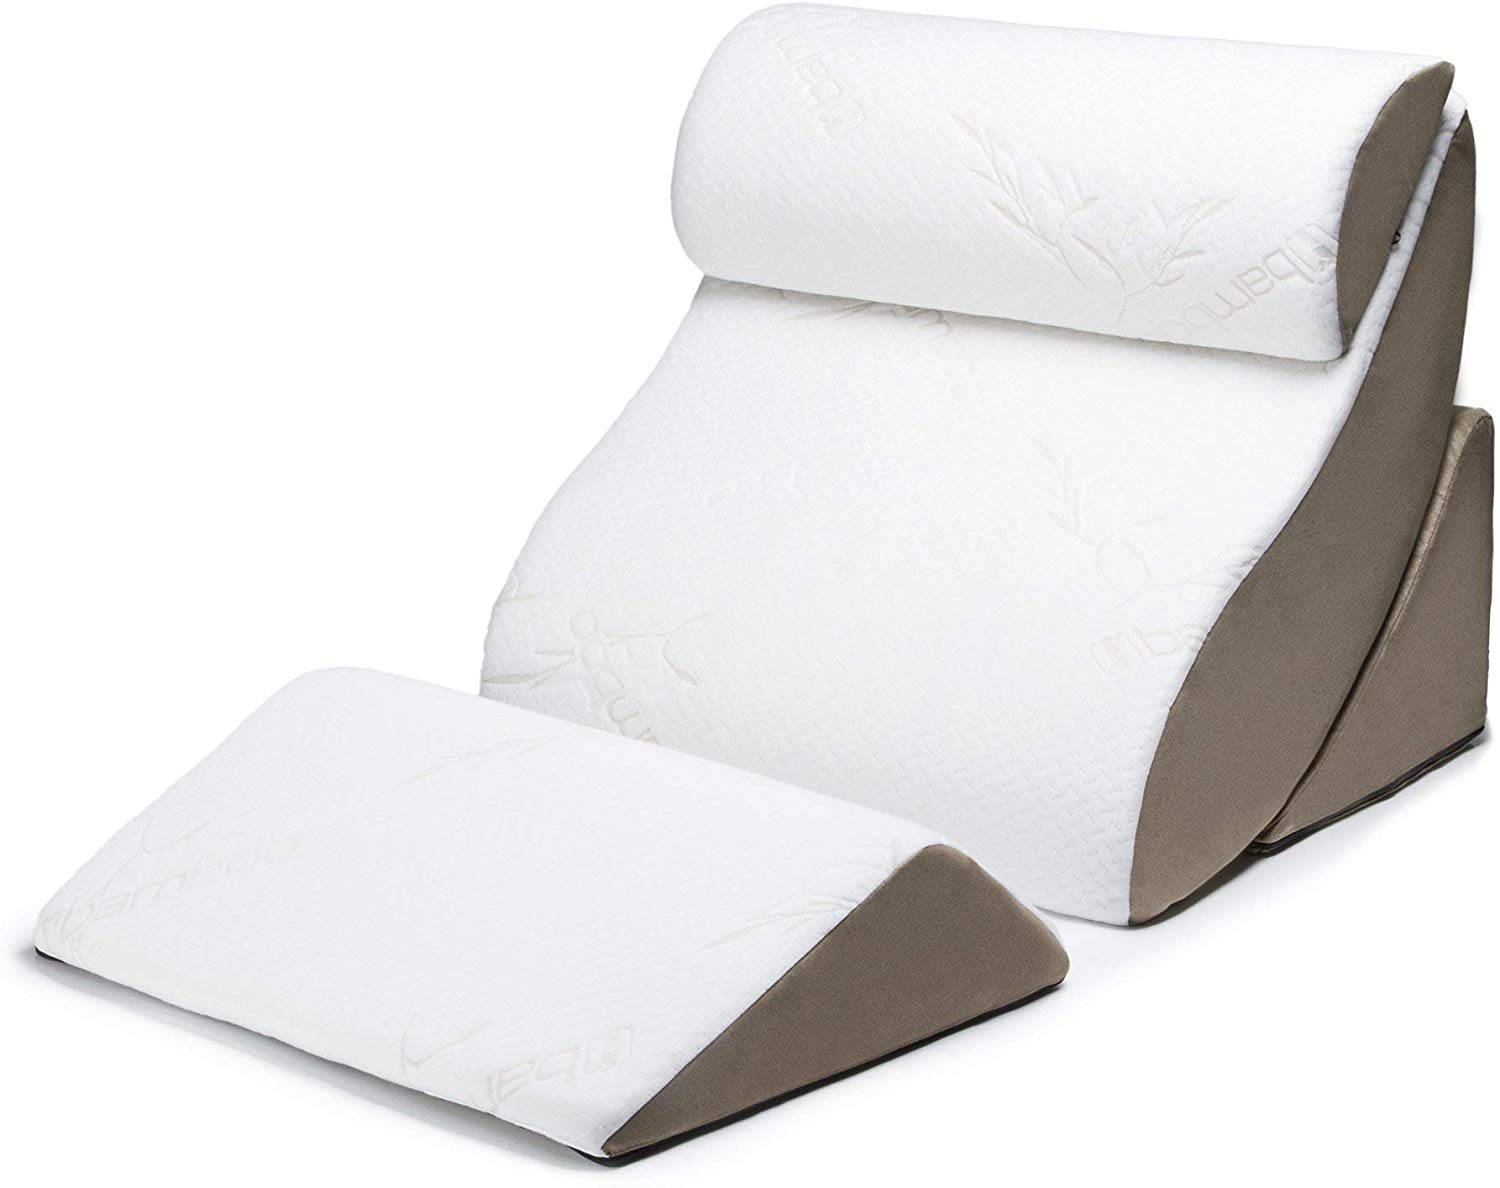 Avana Best Orthopedic Pillow review by www.dailysleep.org